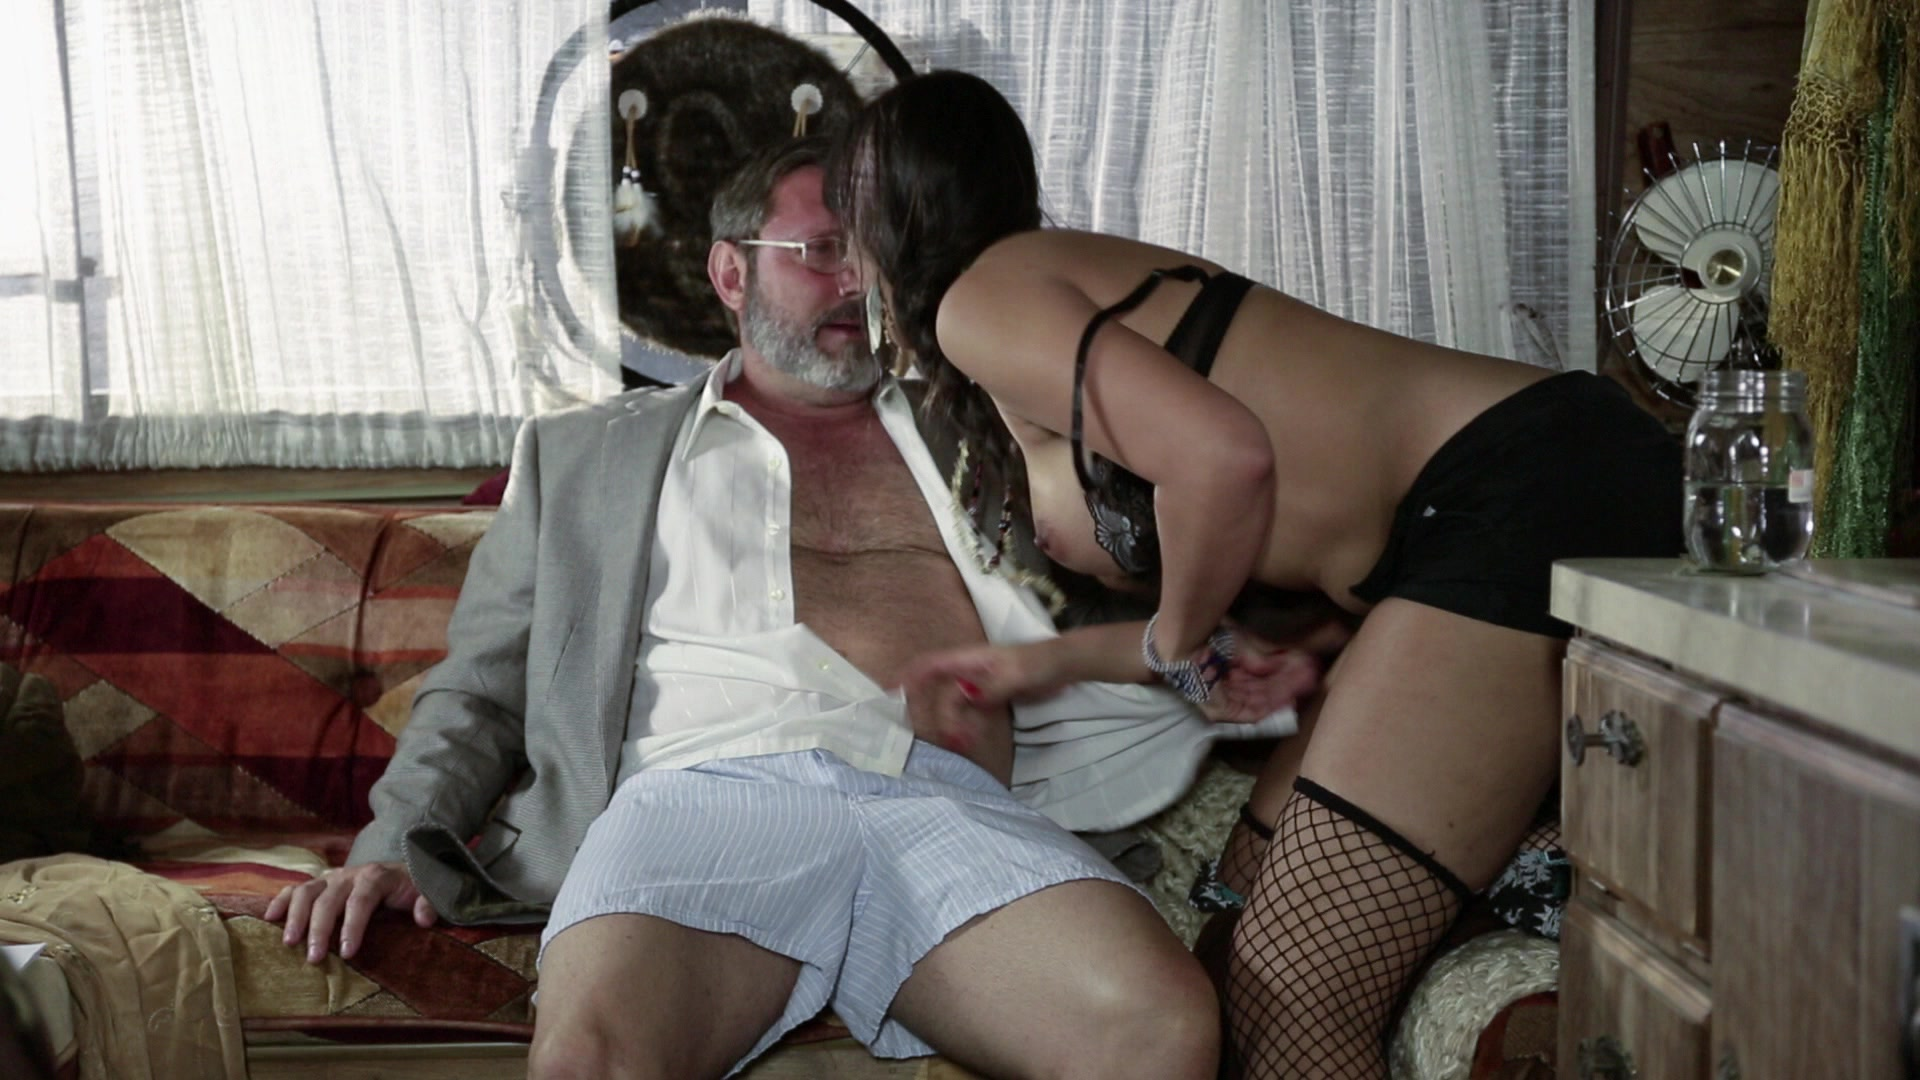 Scene with Brad Armstrong and Mercedes Carrera - image 9 out of 20